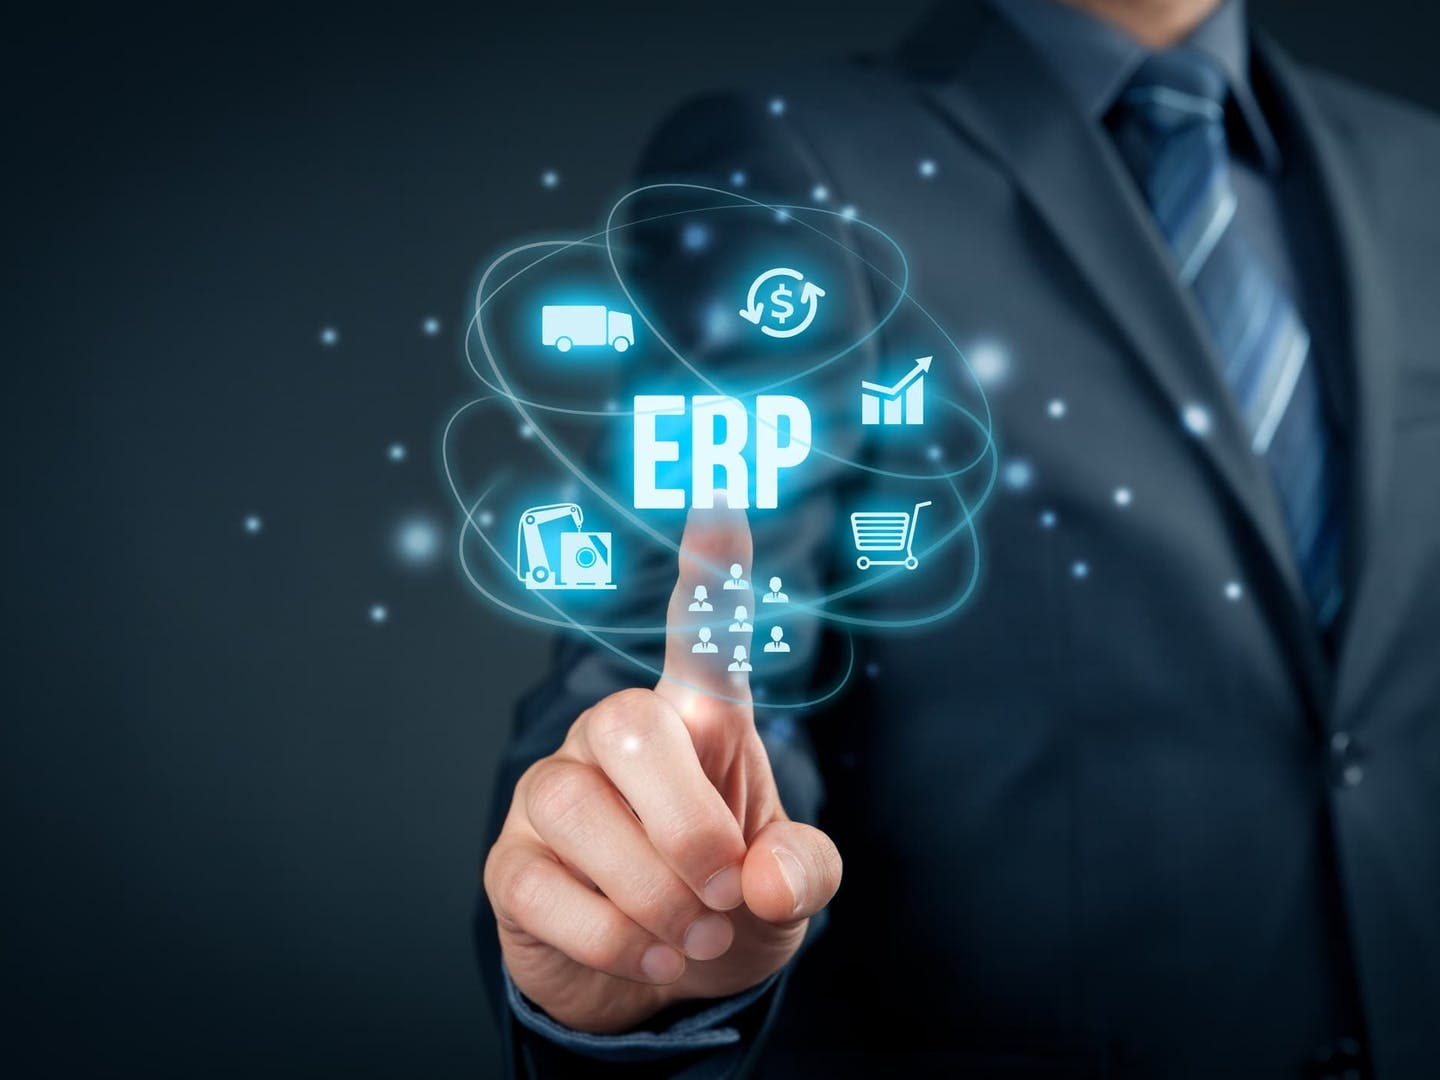 The benefits of cloud based erp